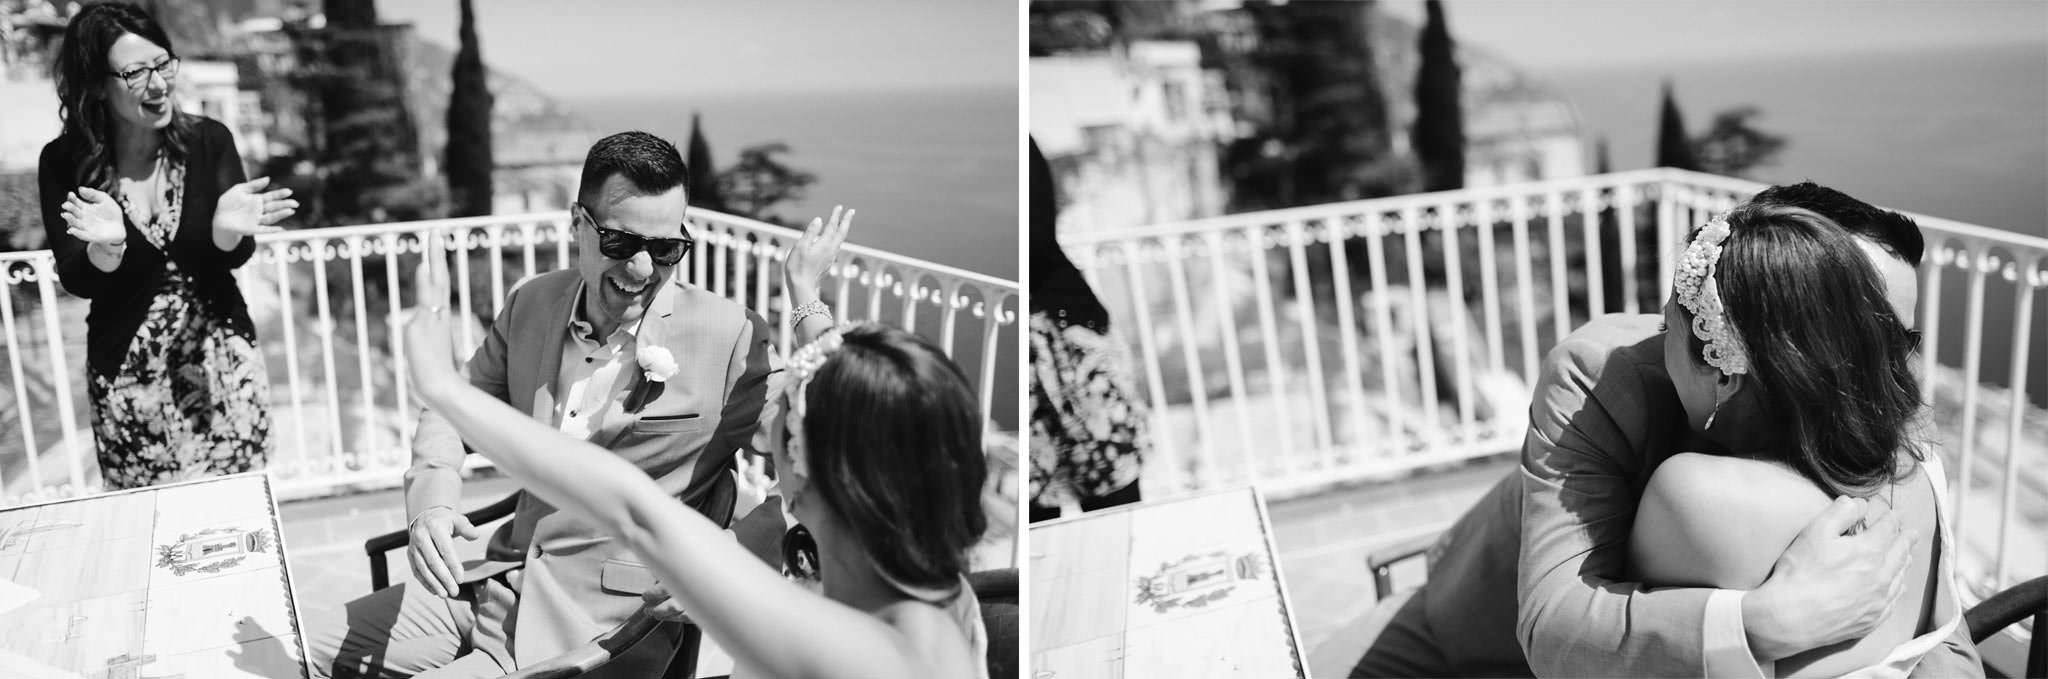 positano-wedding-photographer-054